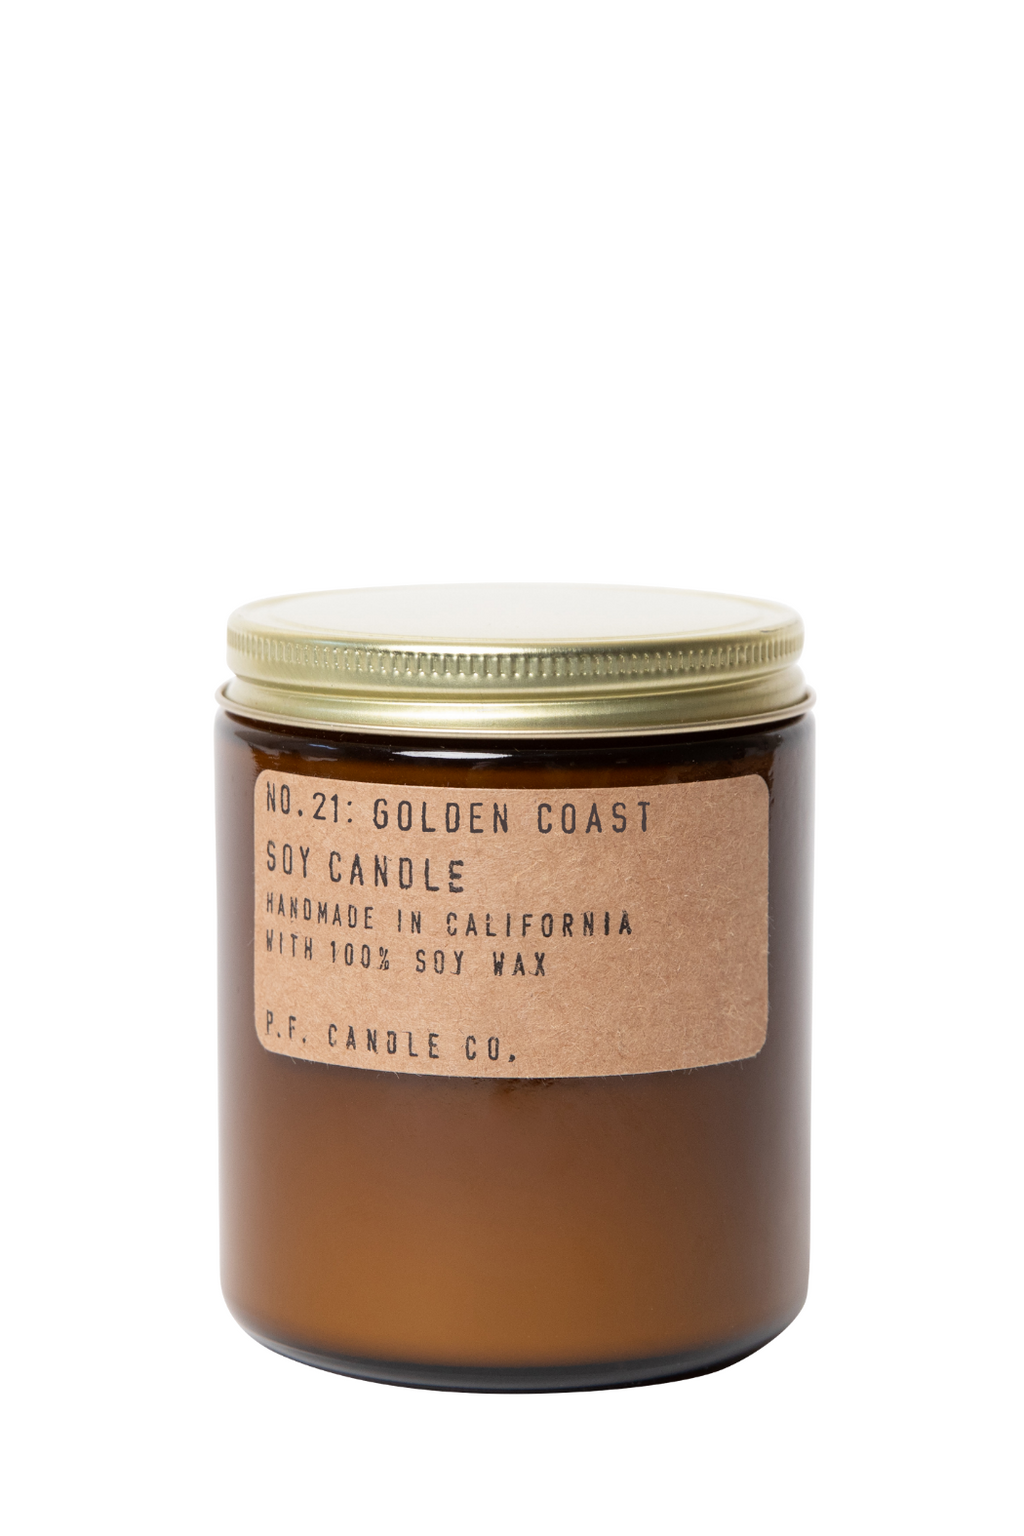 P.F. Candle Co Golden Coast Candle